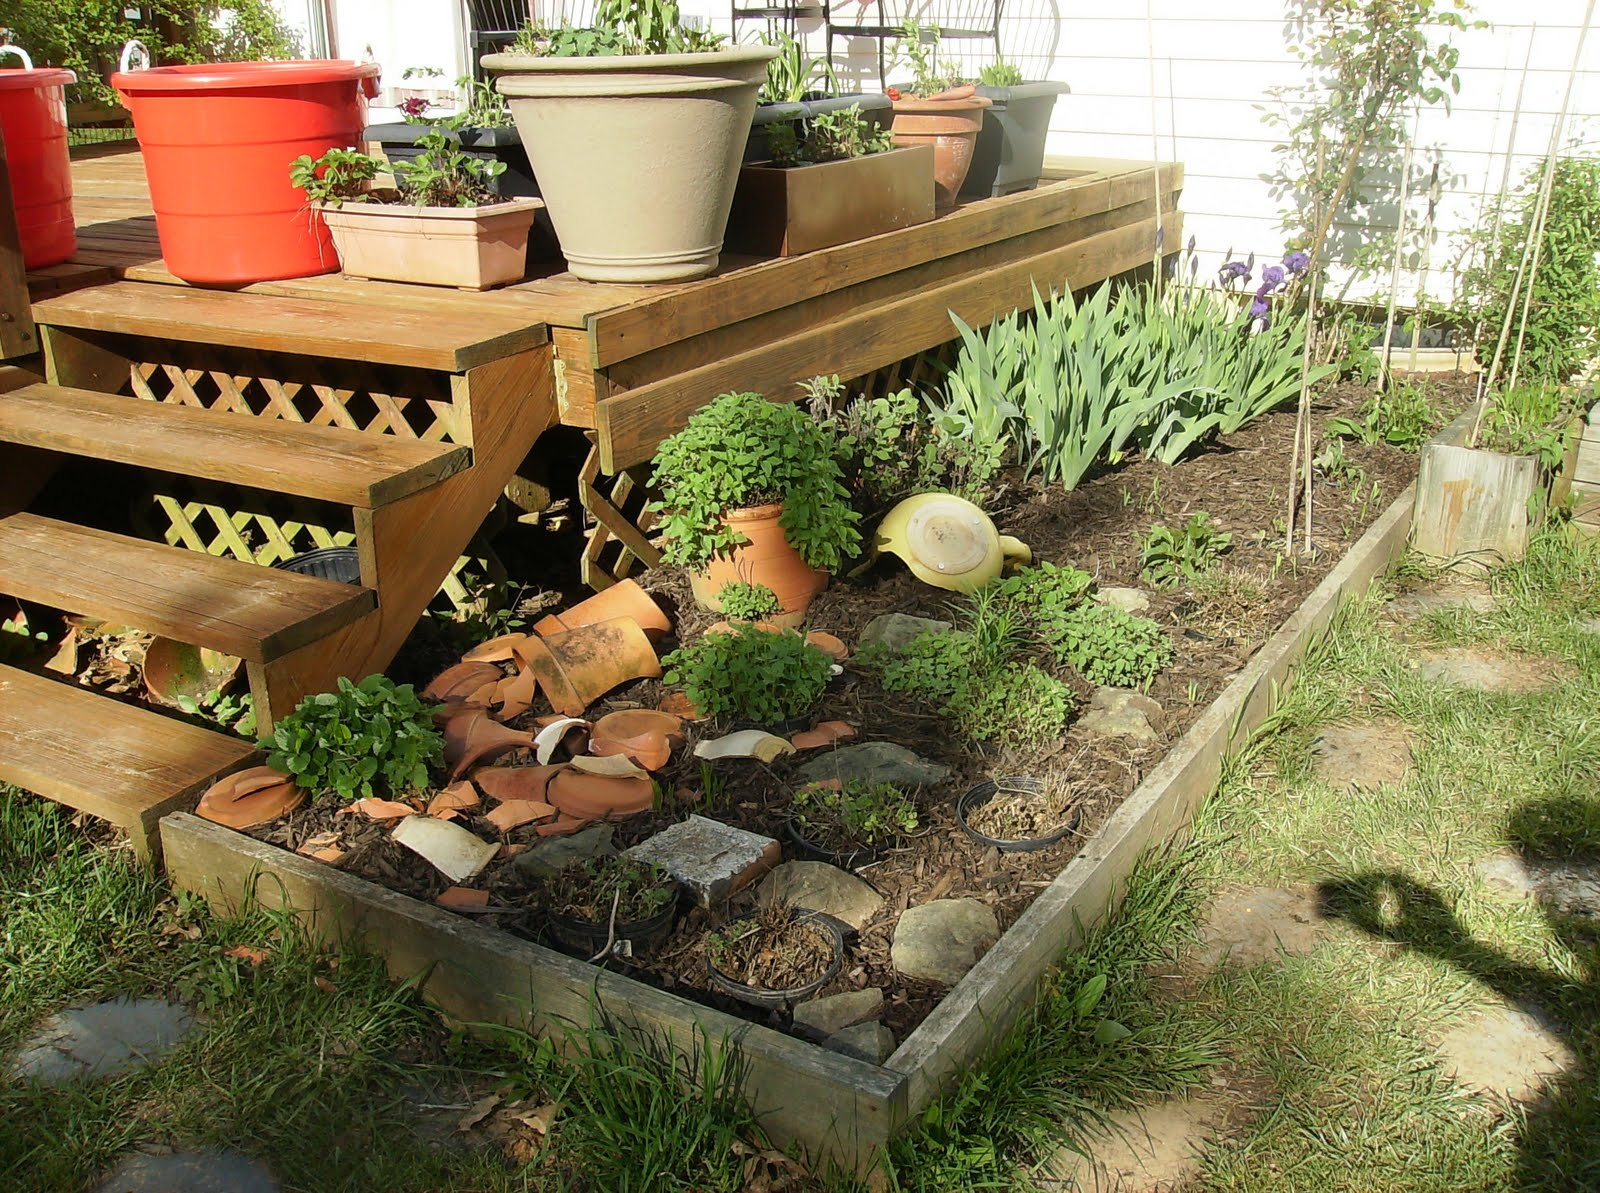 The Rusted Vegetable Garden